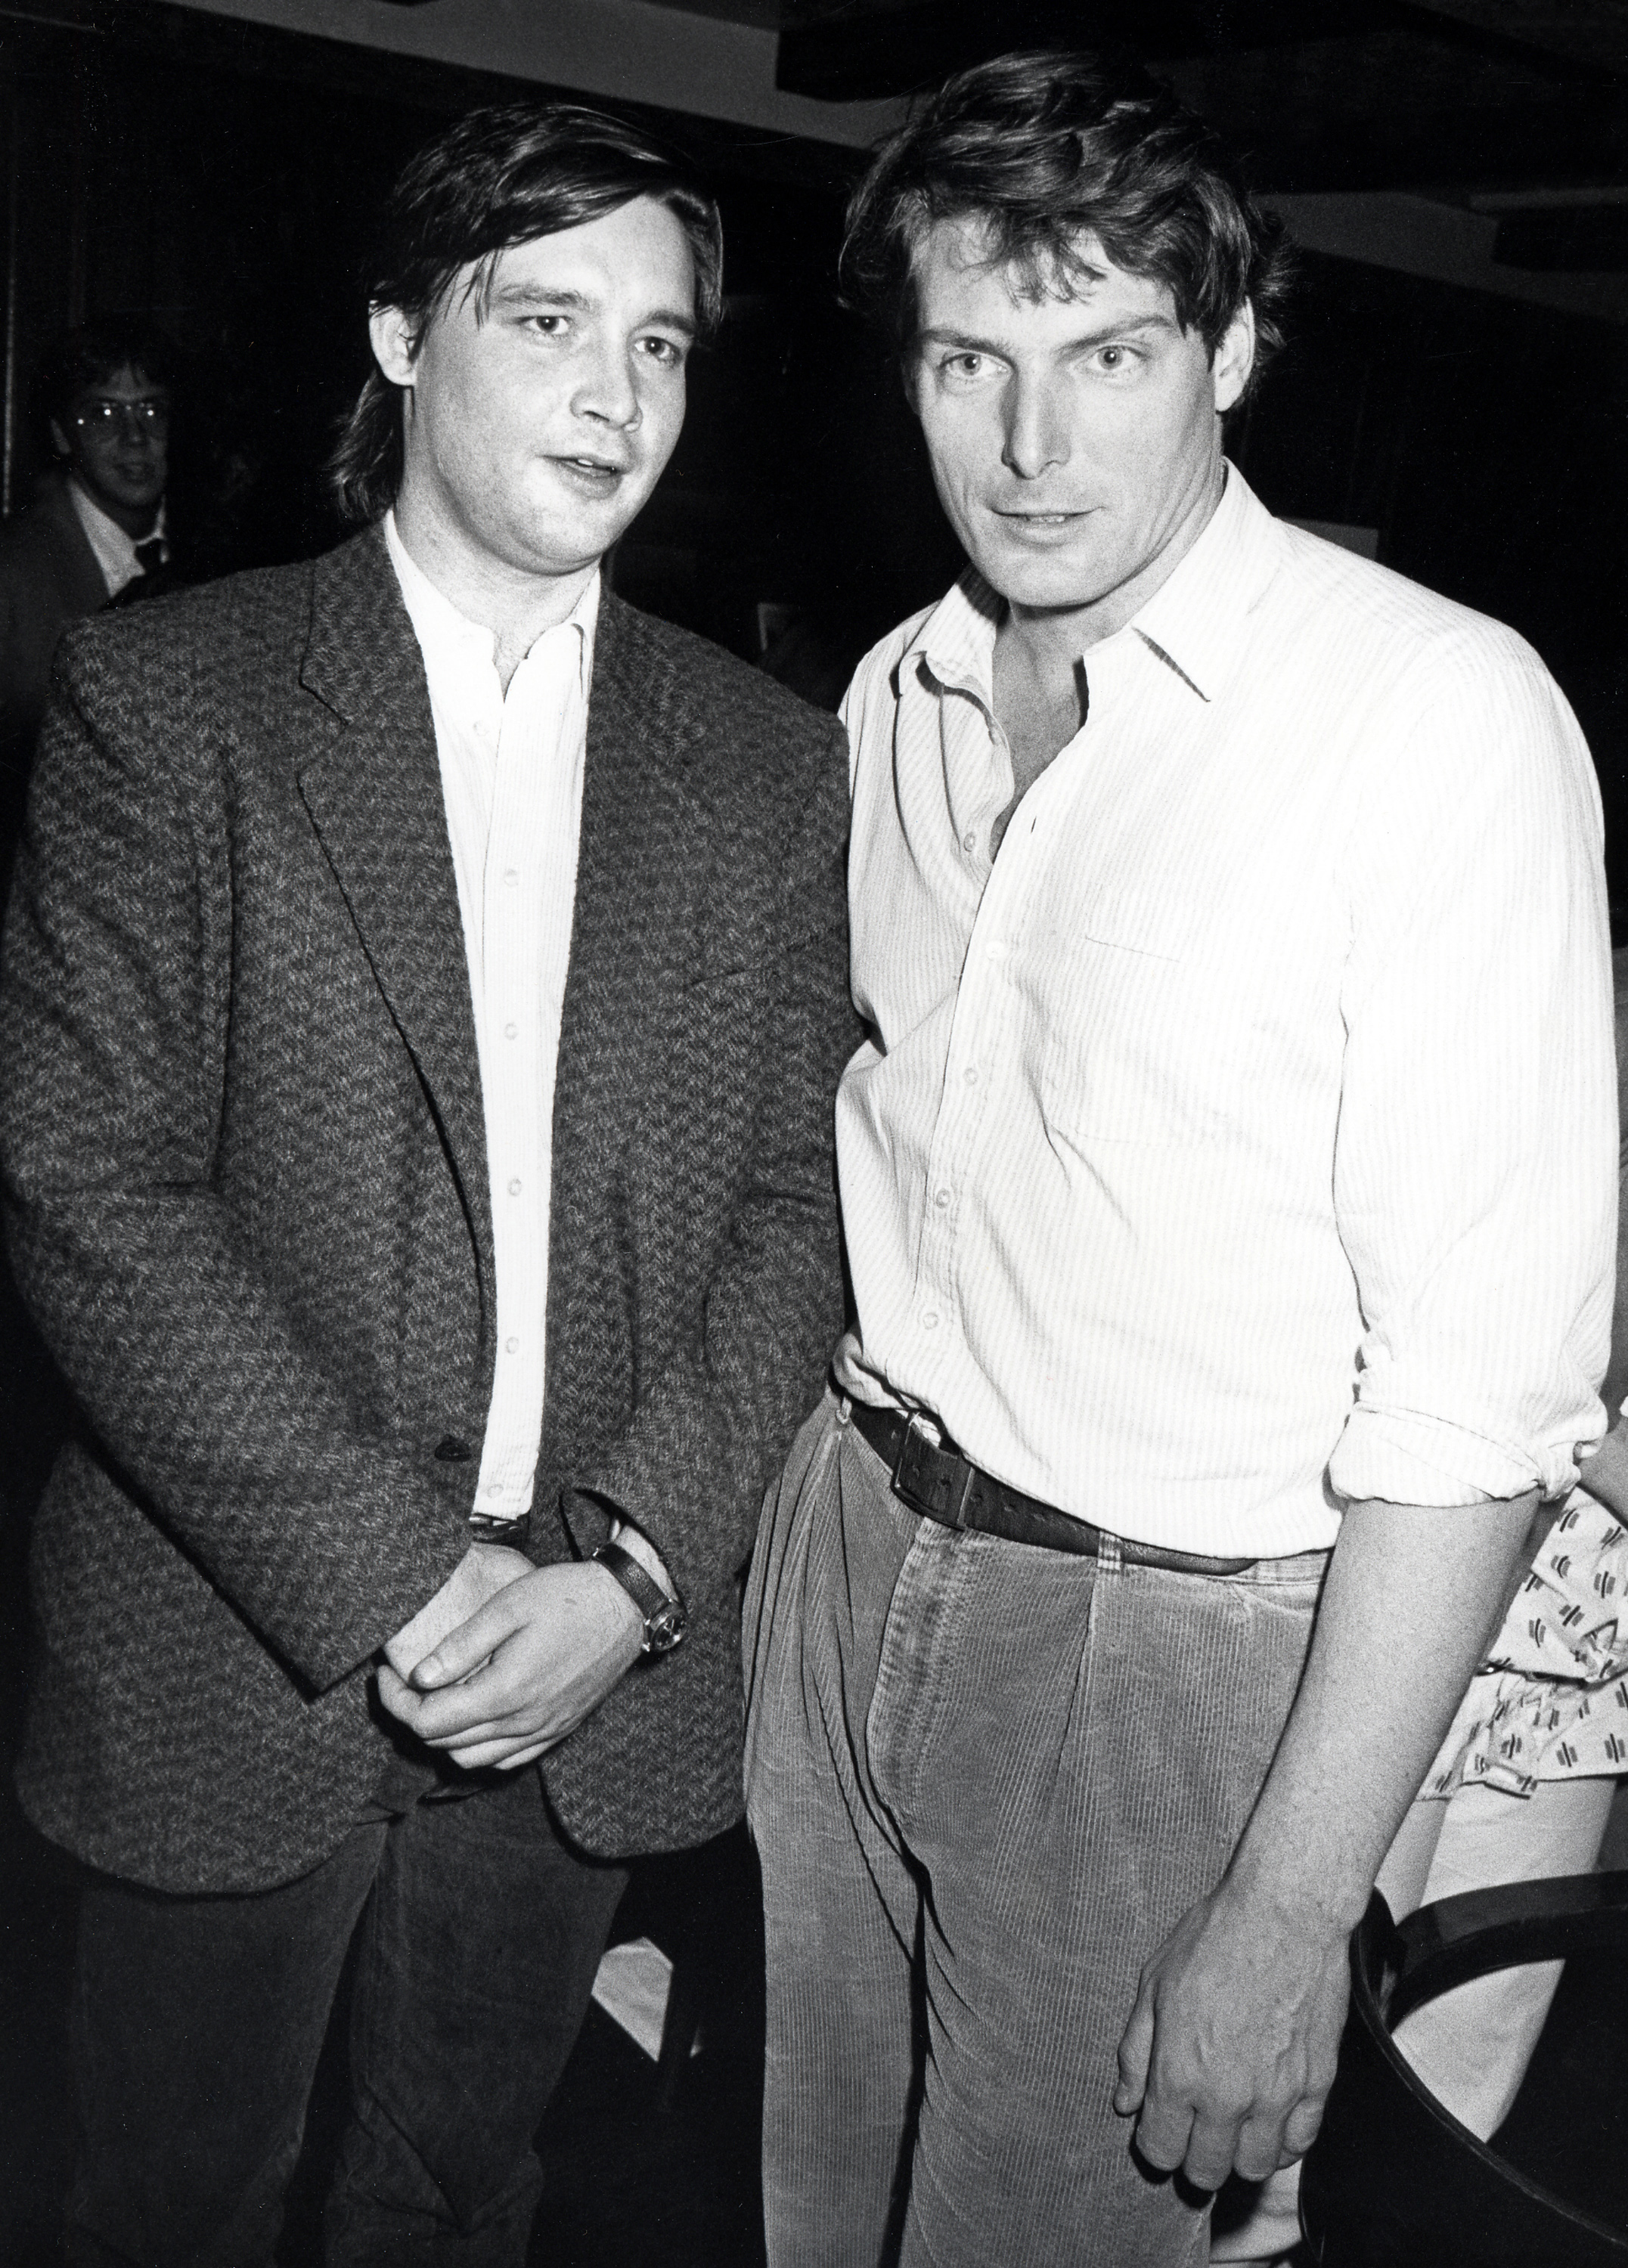 Christopher Reeve and John Murray at an event for Moving Violations (1985)